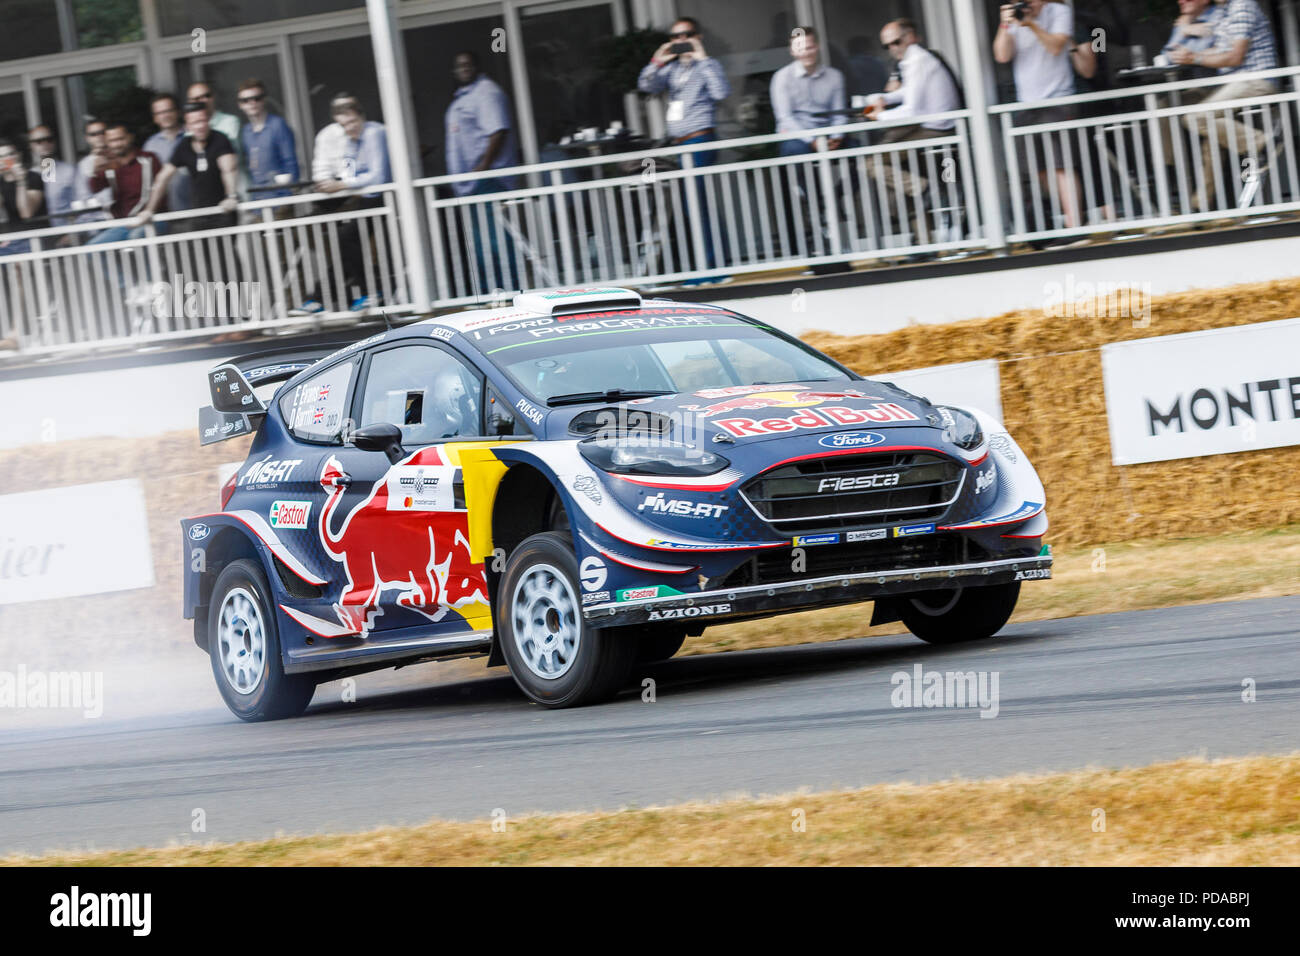 ford rally car stock photos ford rally car stock images alamy. Black Bedroom Furniture Sets. Home Design Ideas